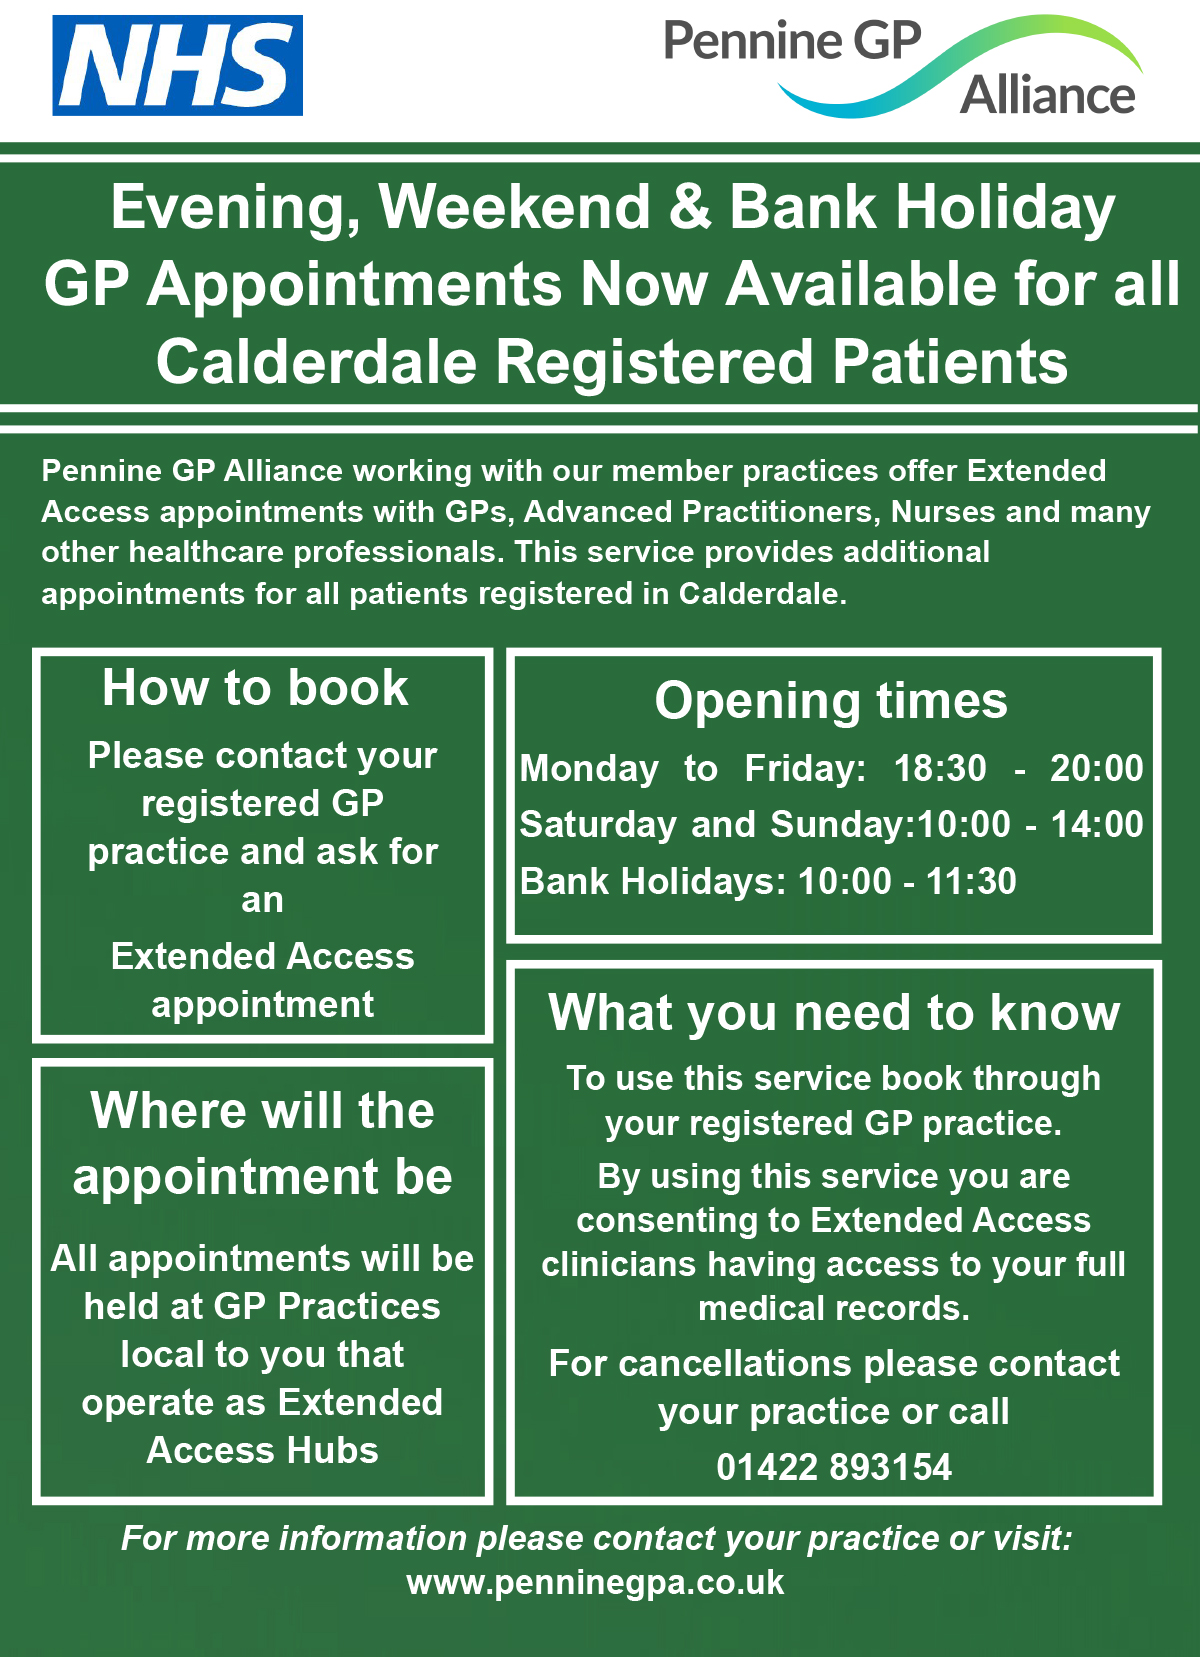 Evening, Weekend & Bank Holiday GP Appointments. See below the image for a PDF version